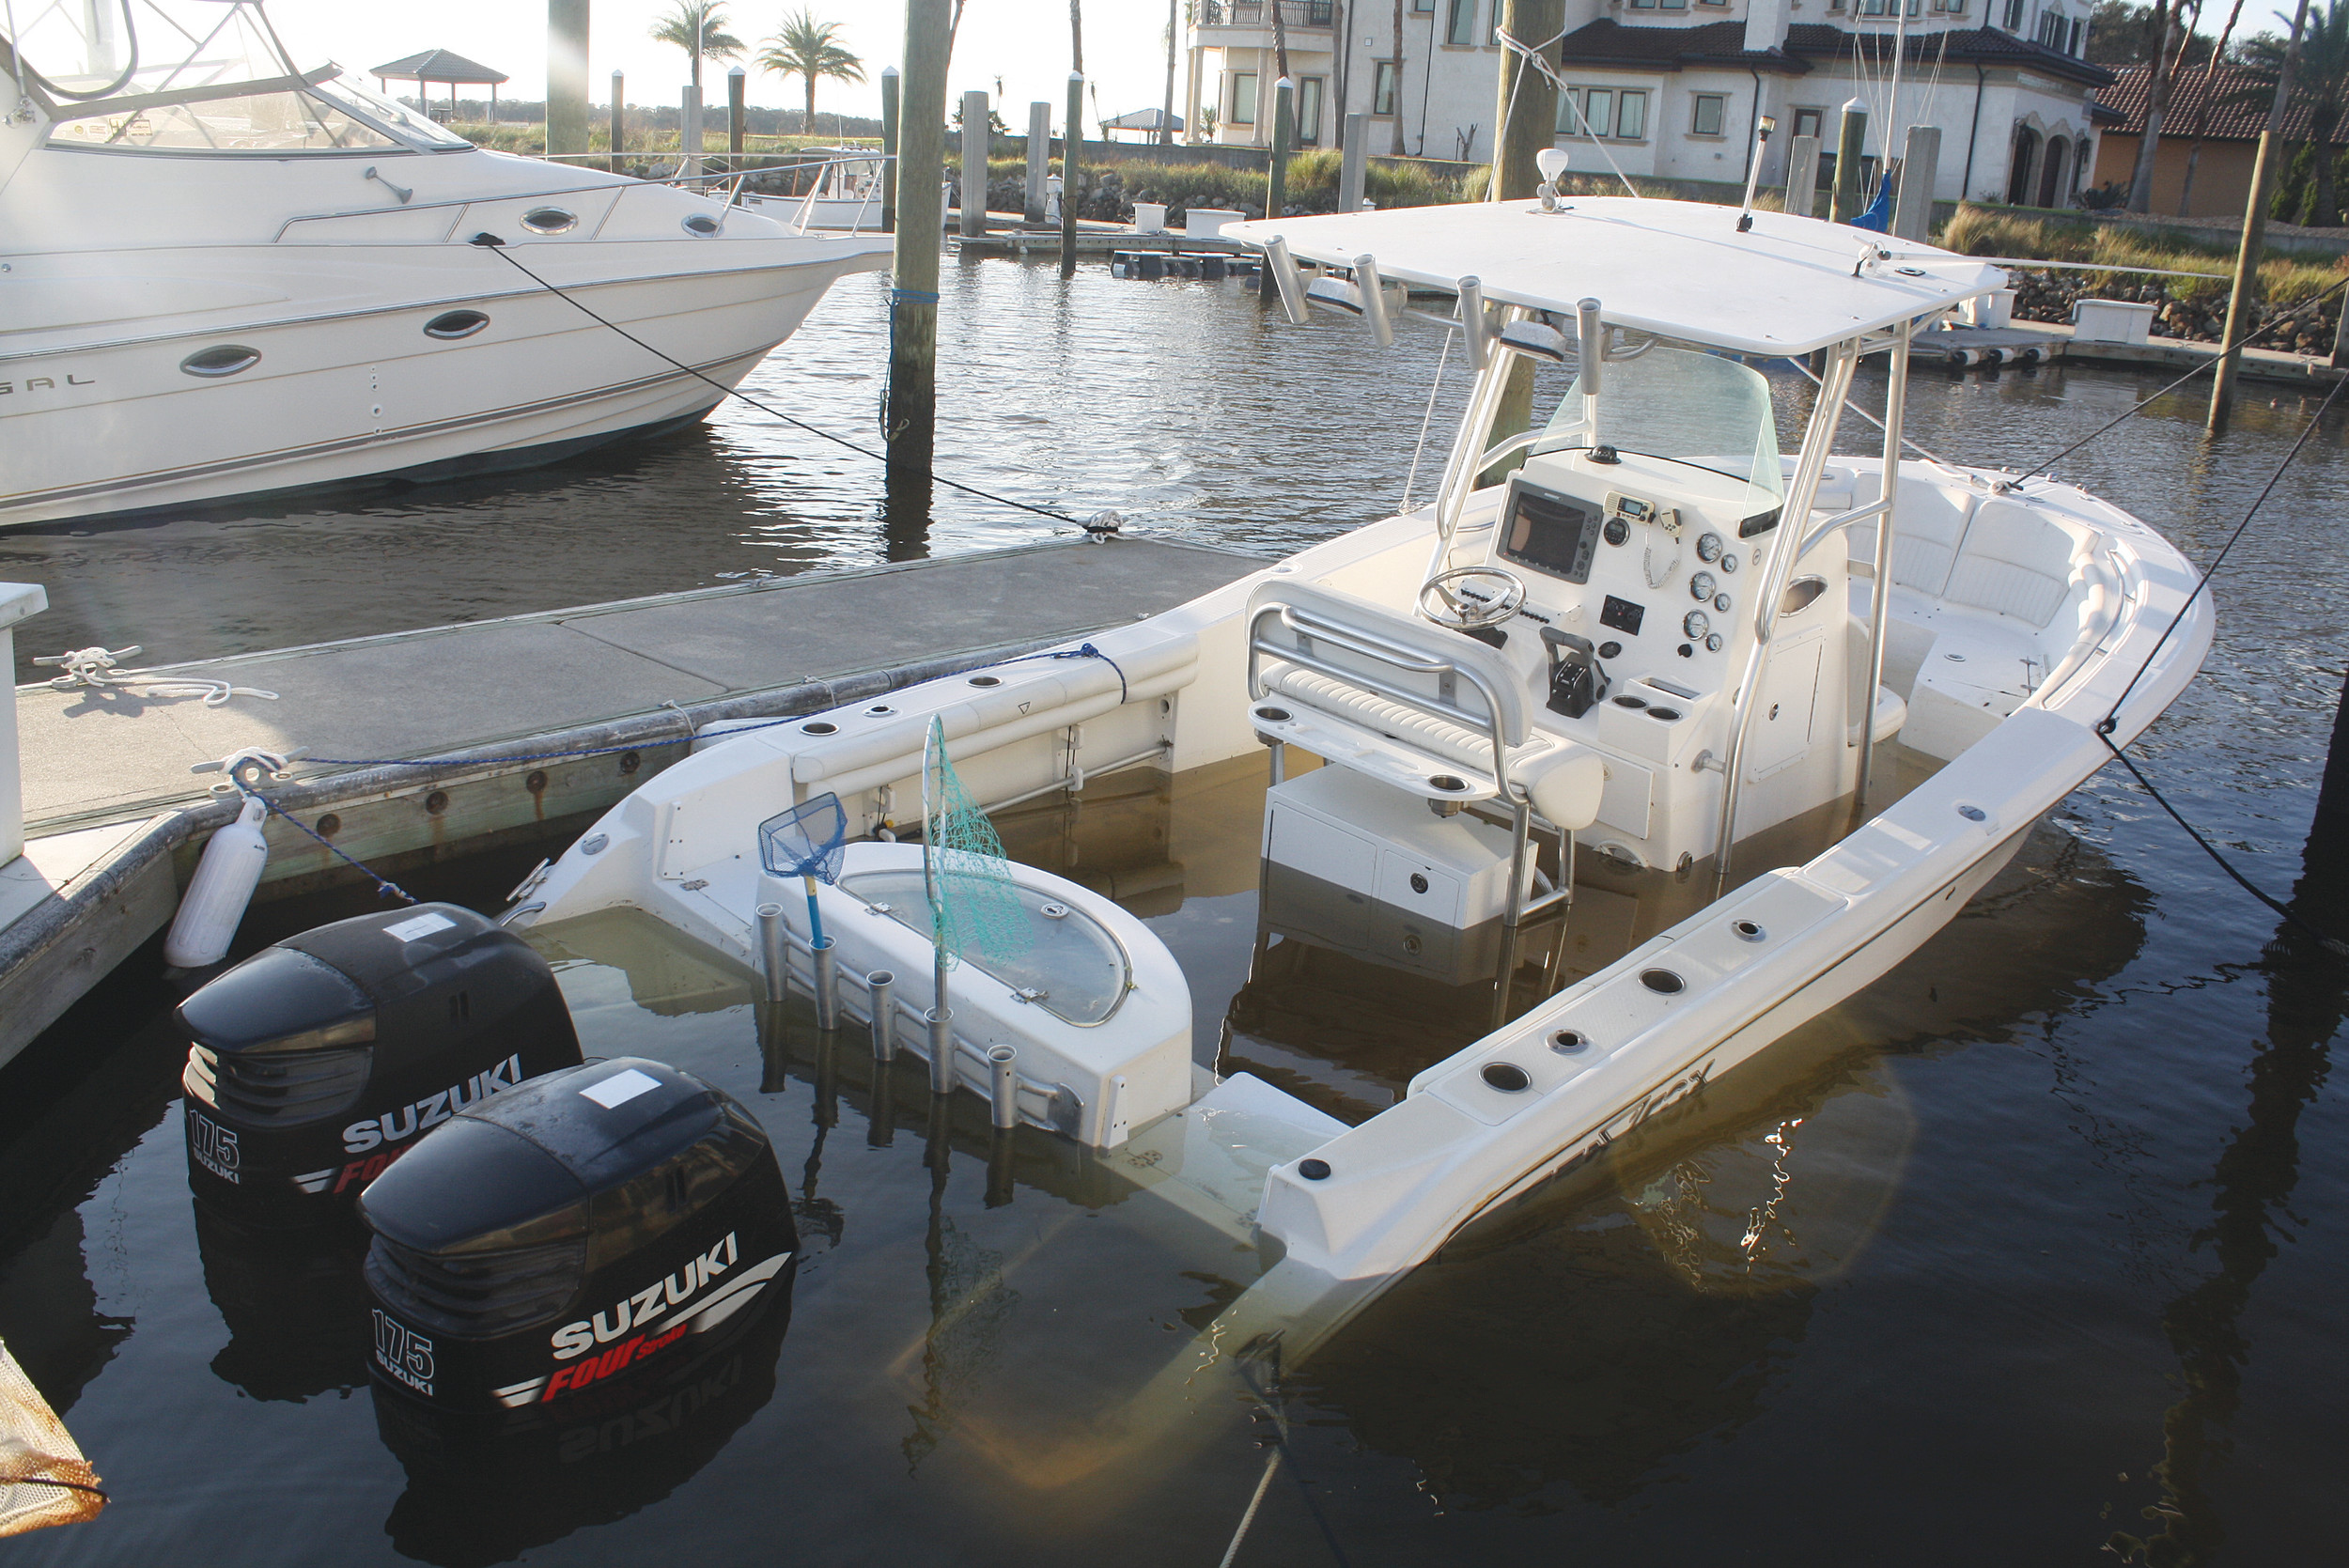 A boat docked in the Vilano Beach area struggles to stay afloat after taking on water from Hurricane Irma.